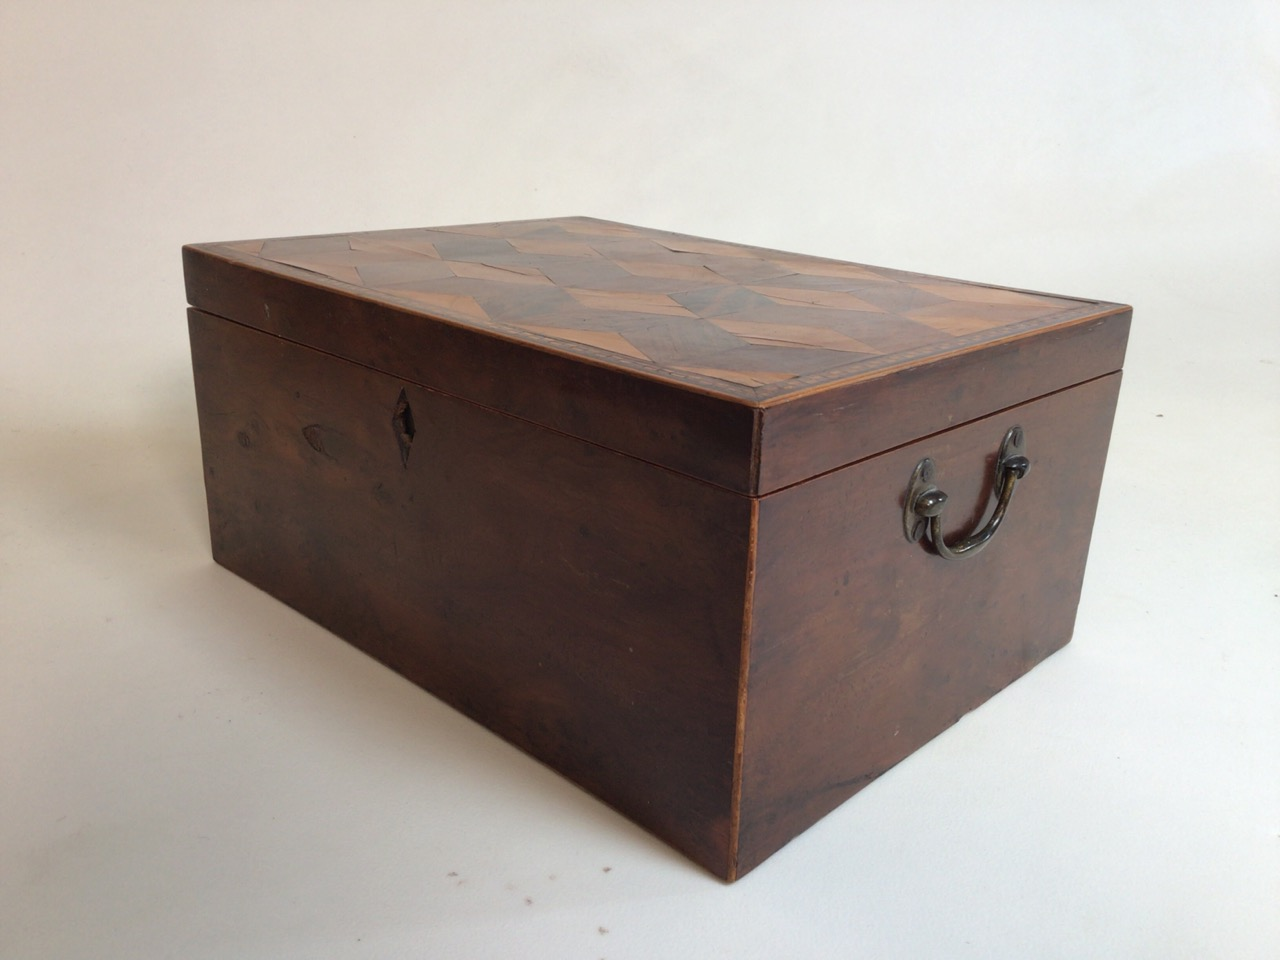 A Victorian parquetry walnut box with metal handles. W:33cm x D:24cm x H:15cm - Image 2 of 5